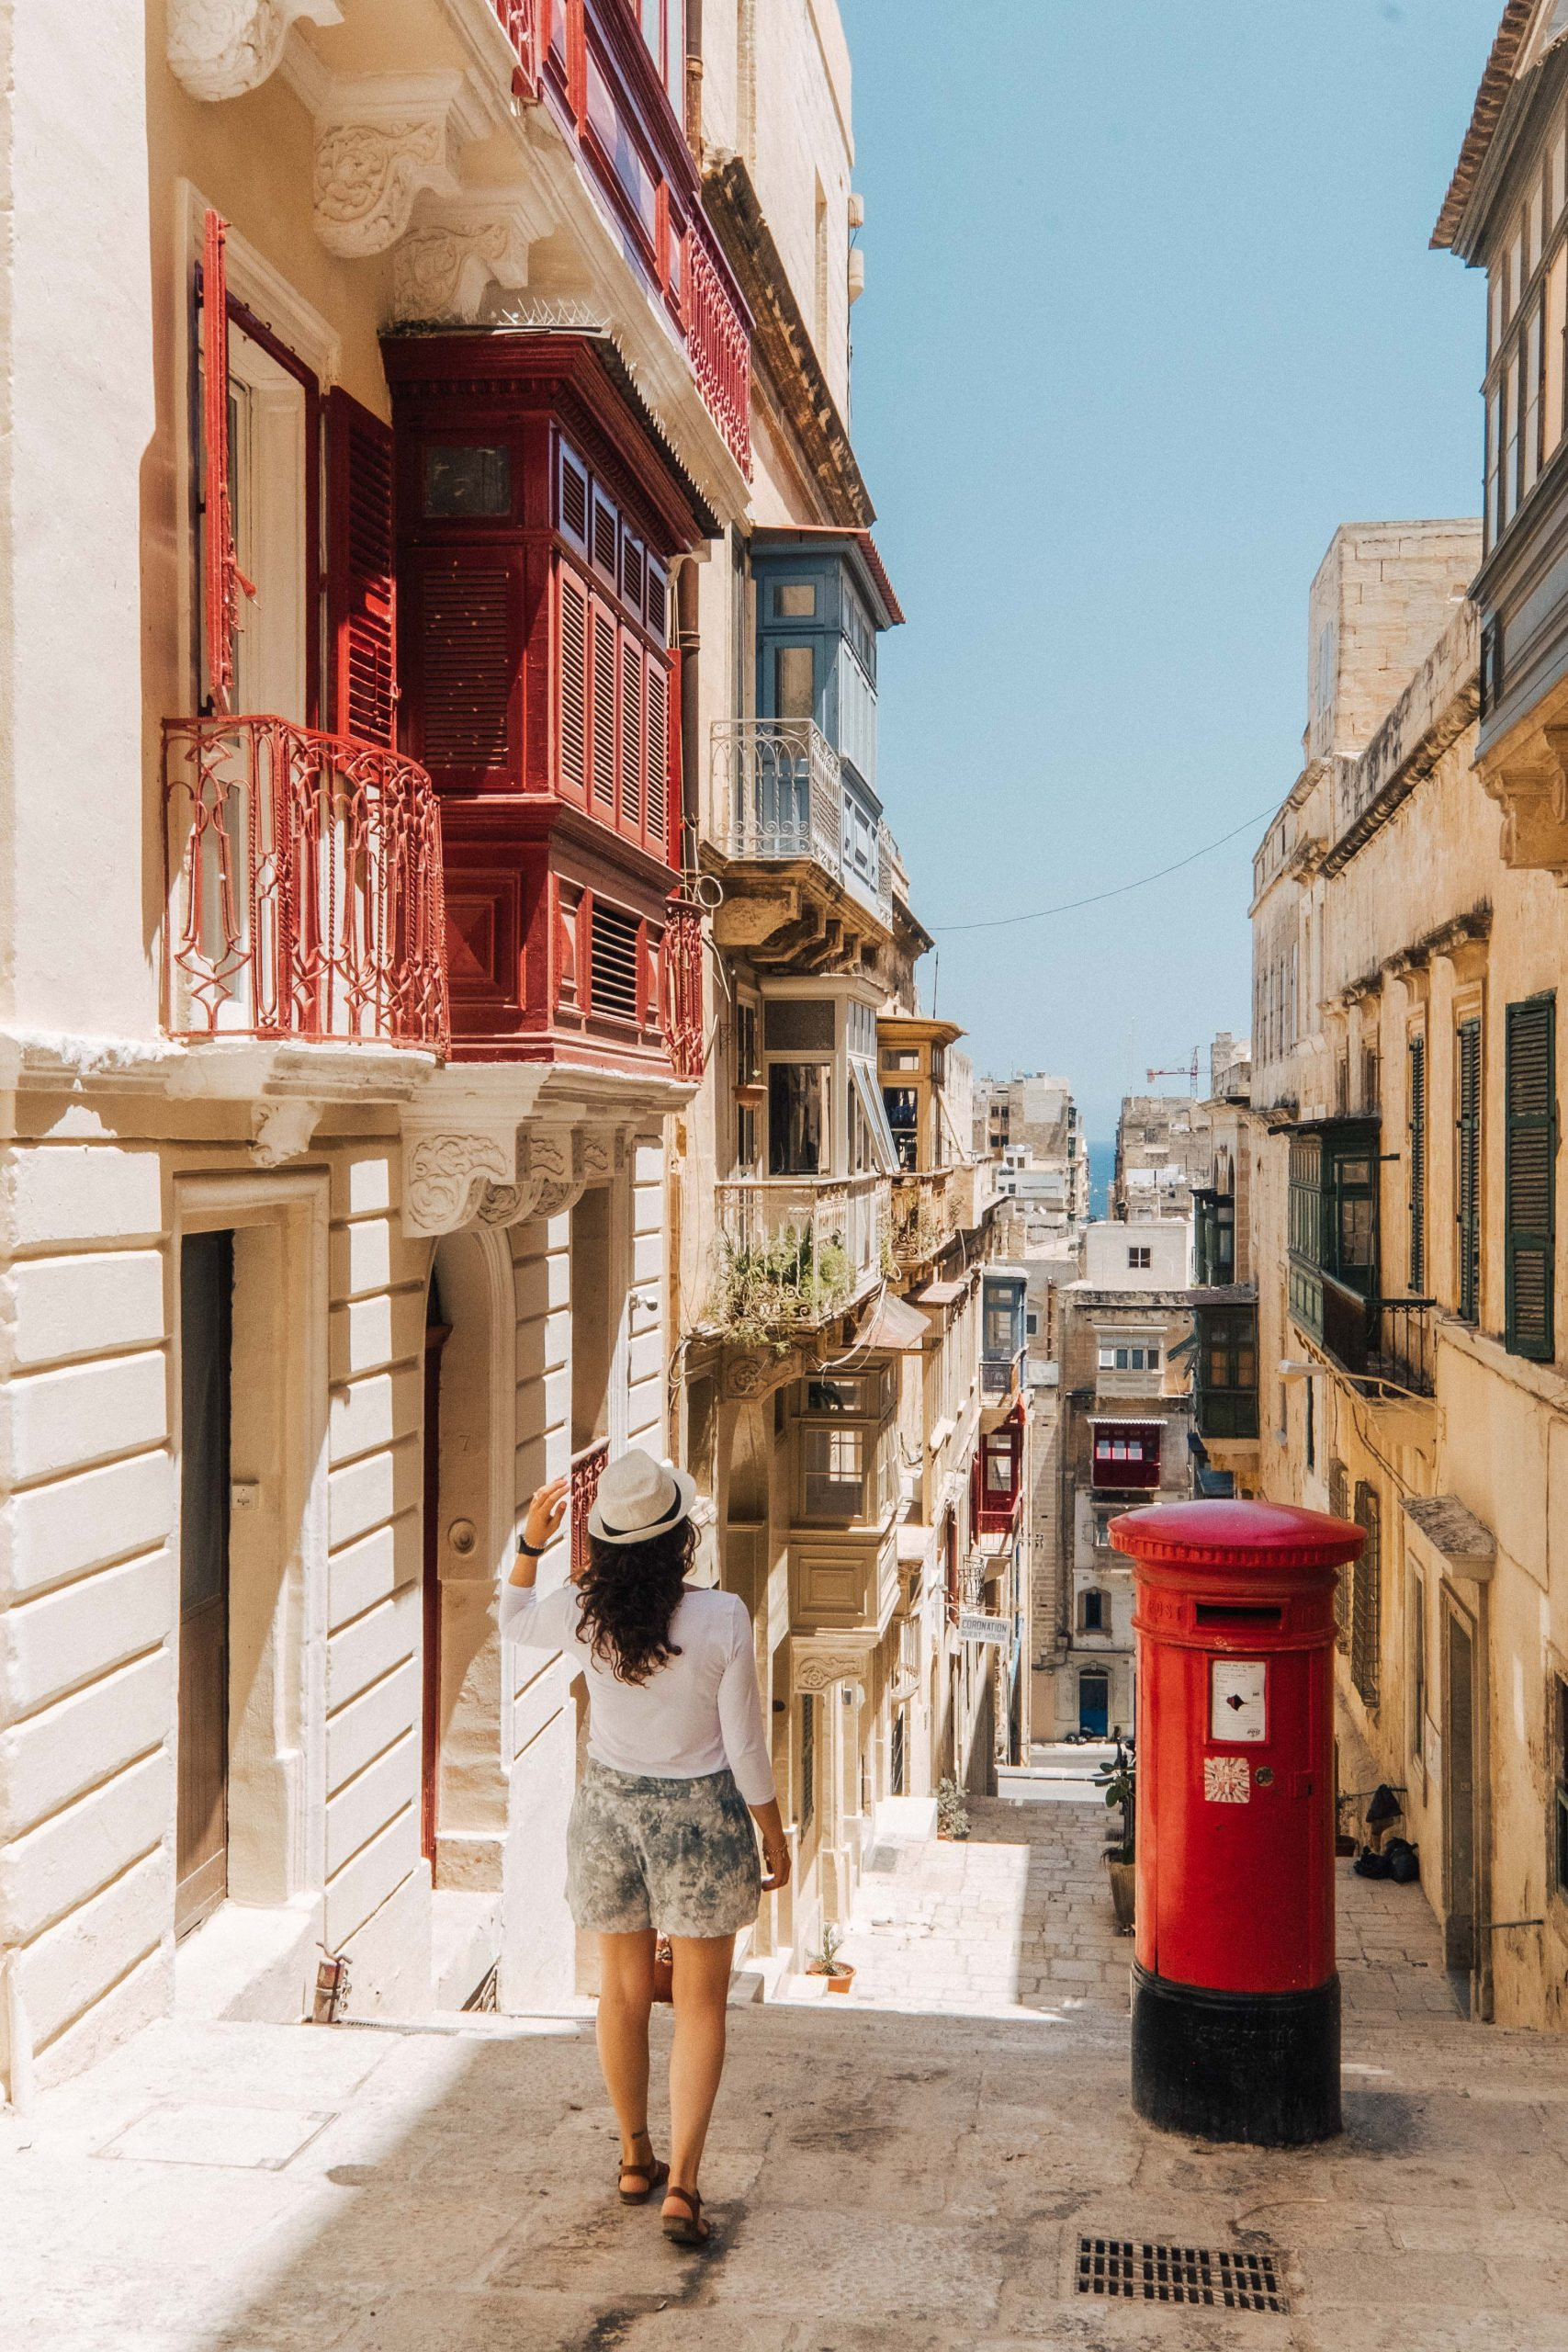 A street in Valletta, Malta, a UNESCO World Heritage Site